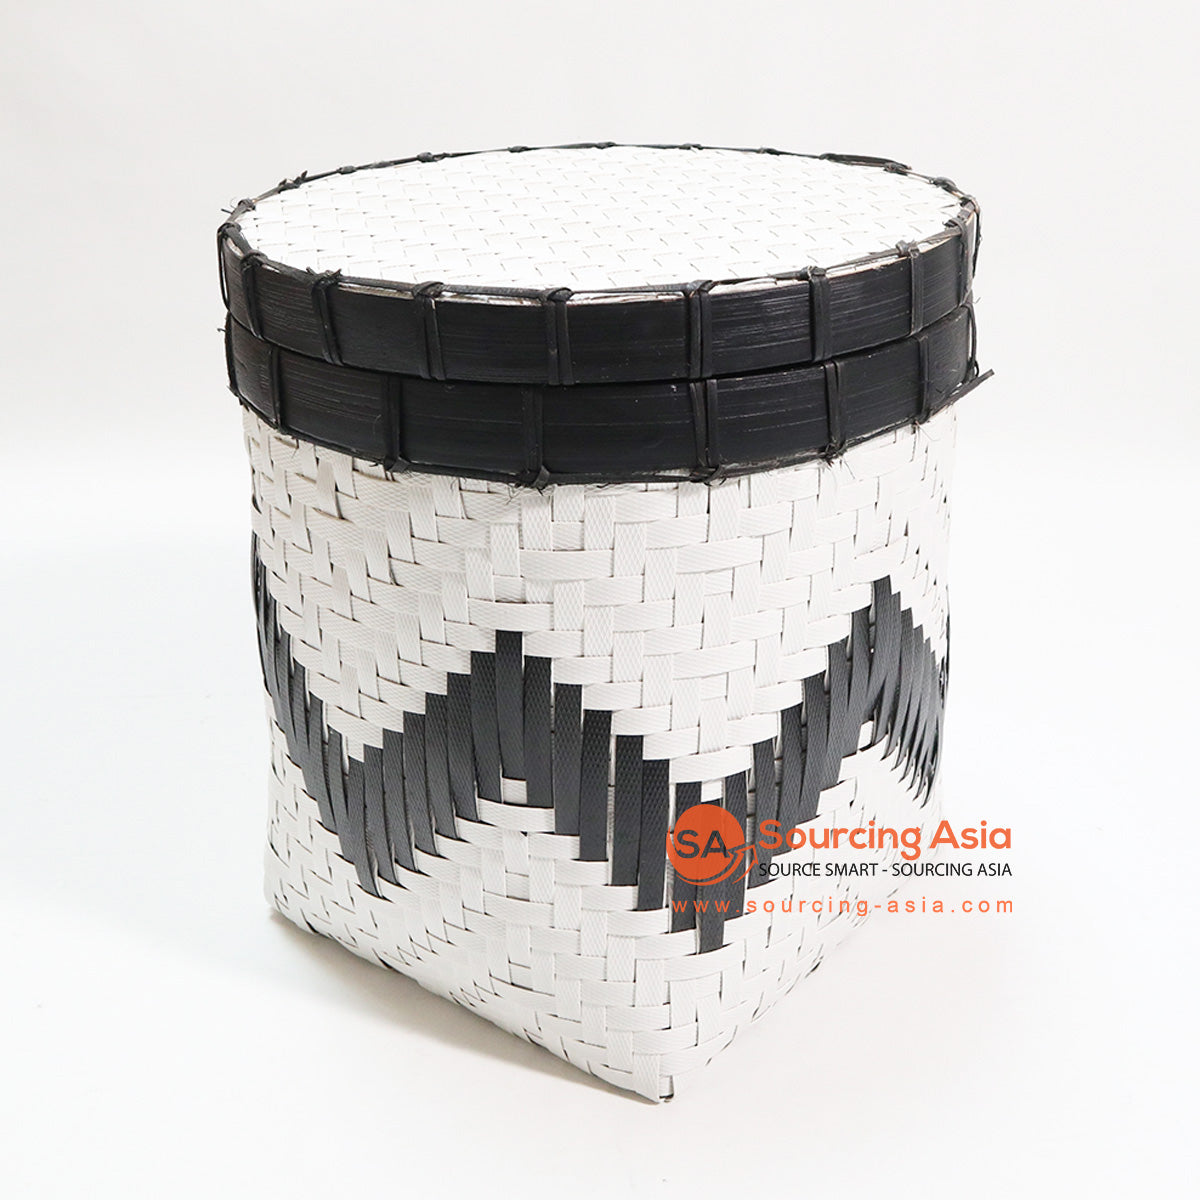 HBSC100 BLACK AND WHITE BAMBOO BASKET